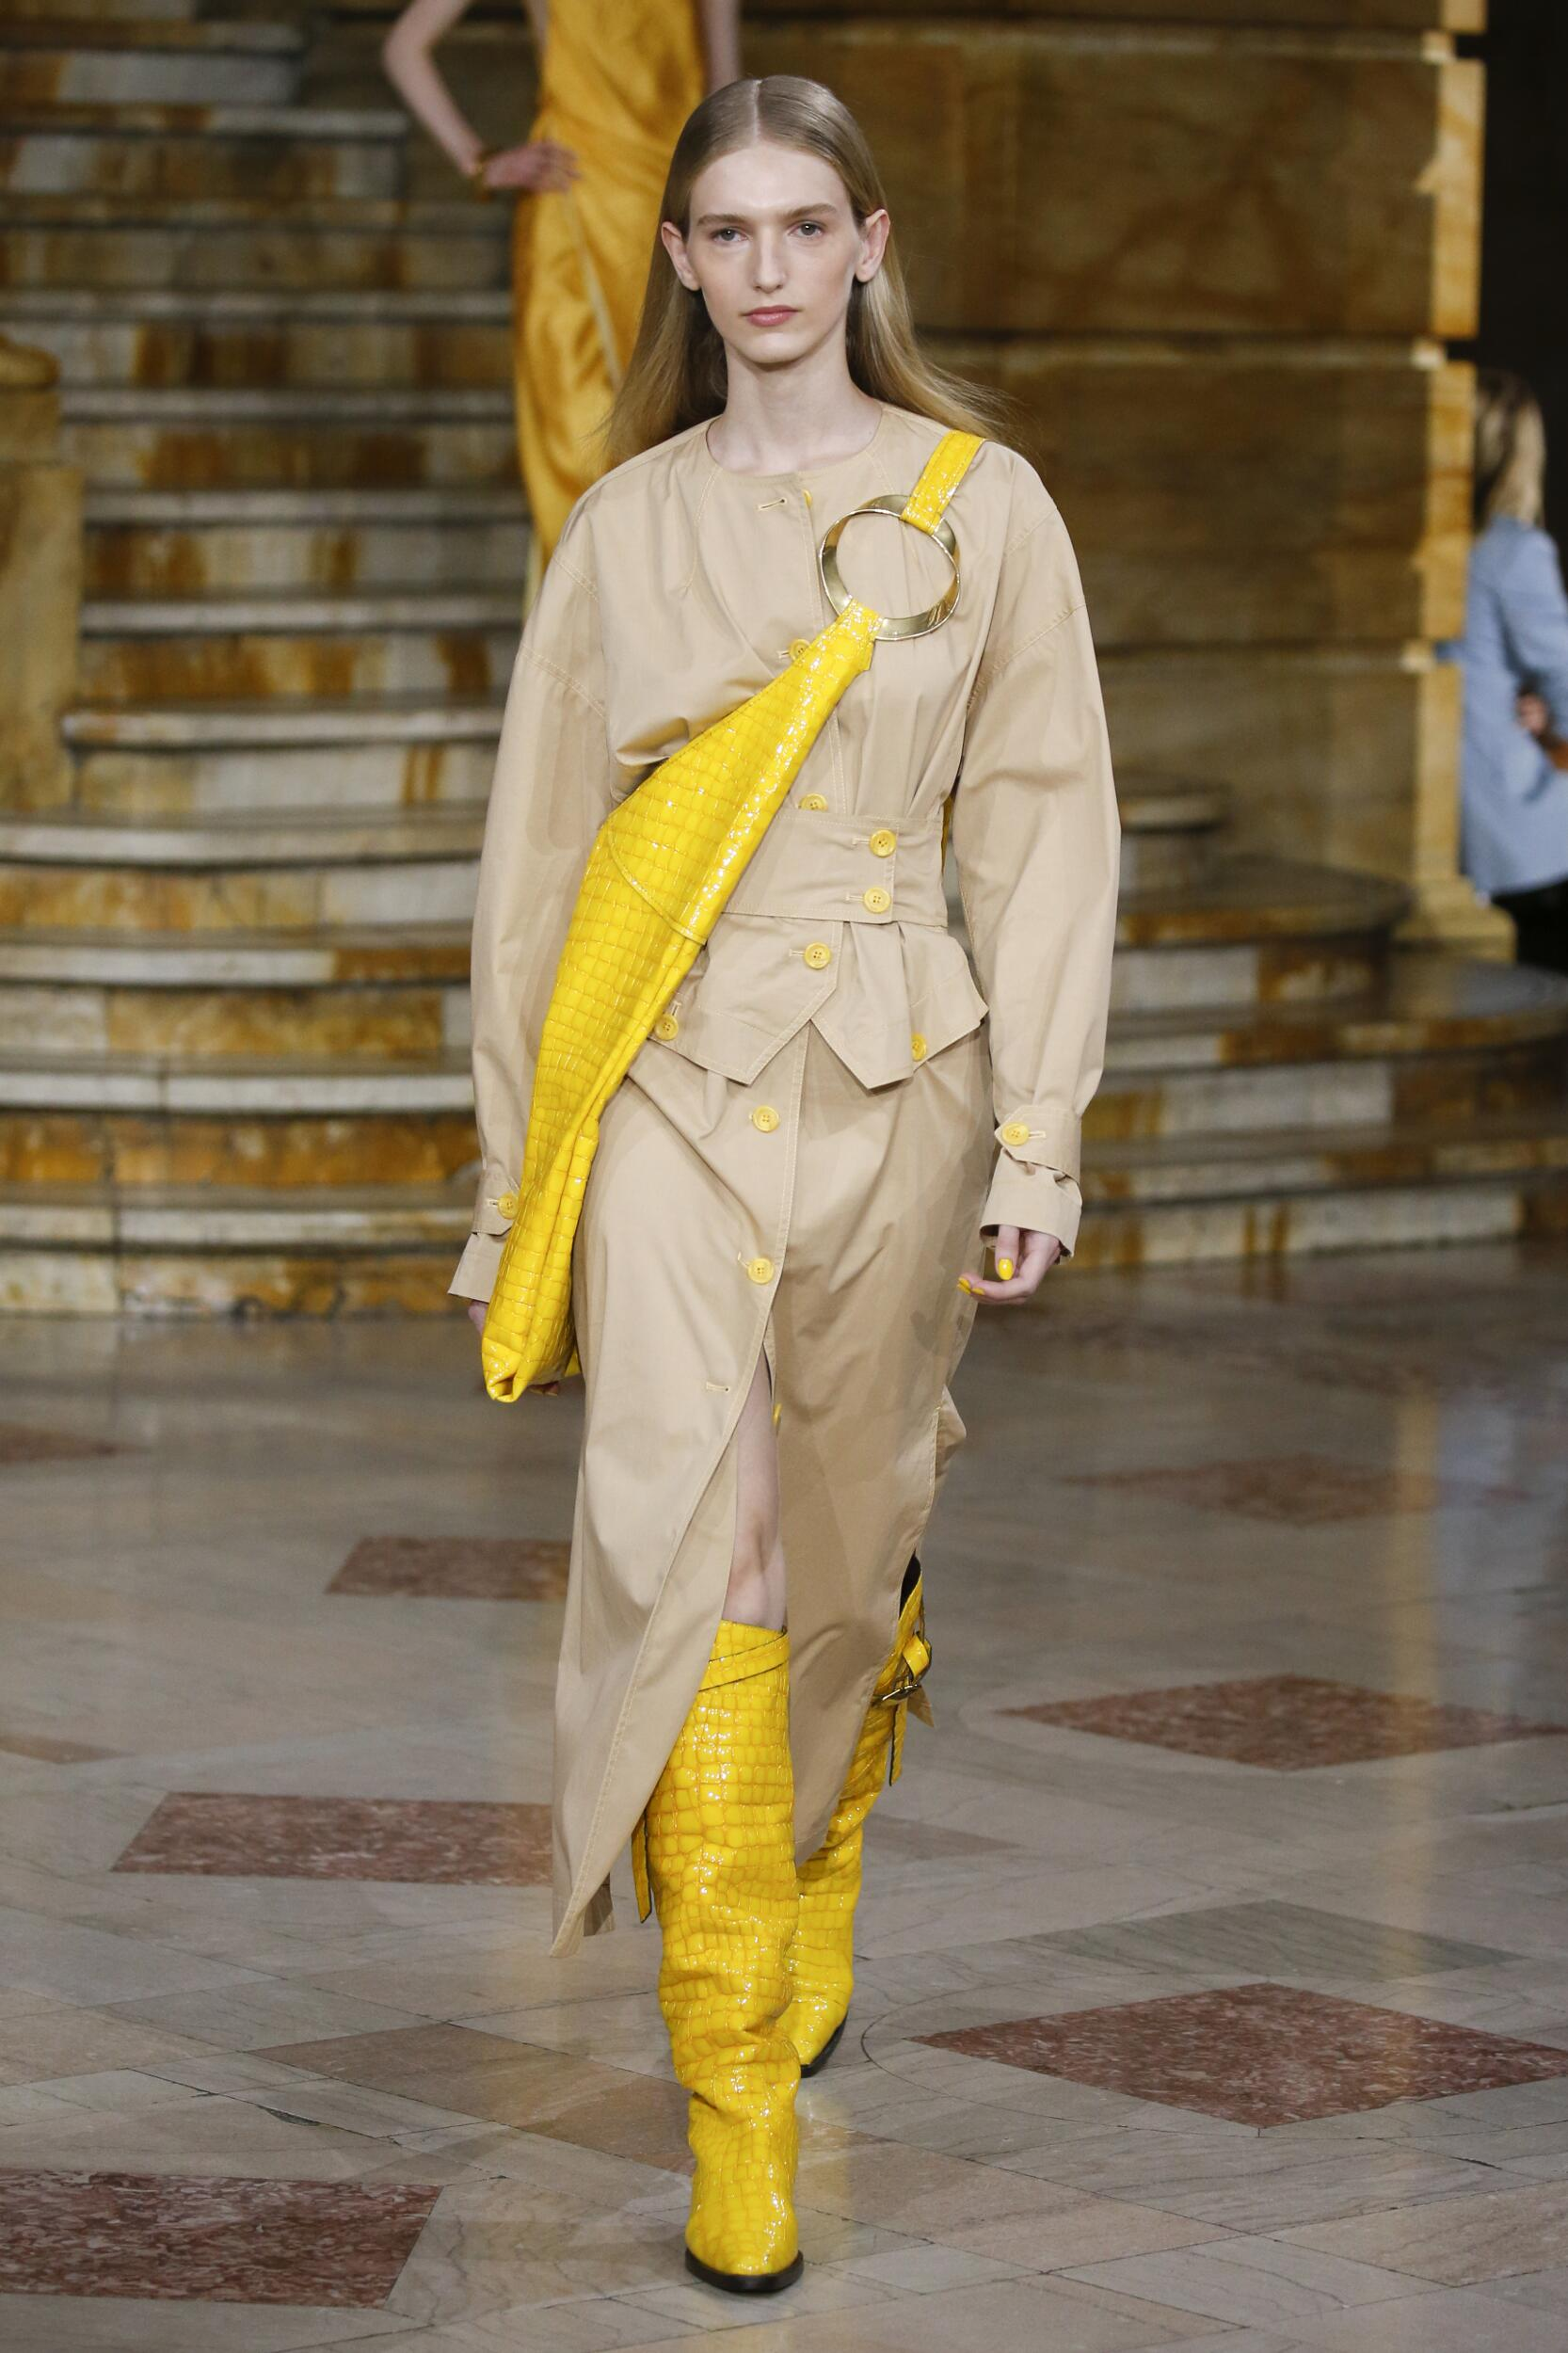 Fashion Model Woman Sies Marjan Catwalk